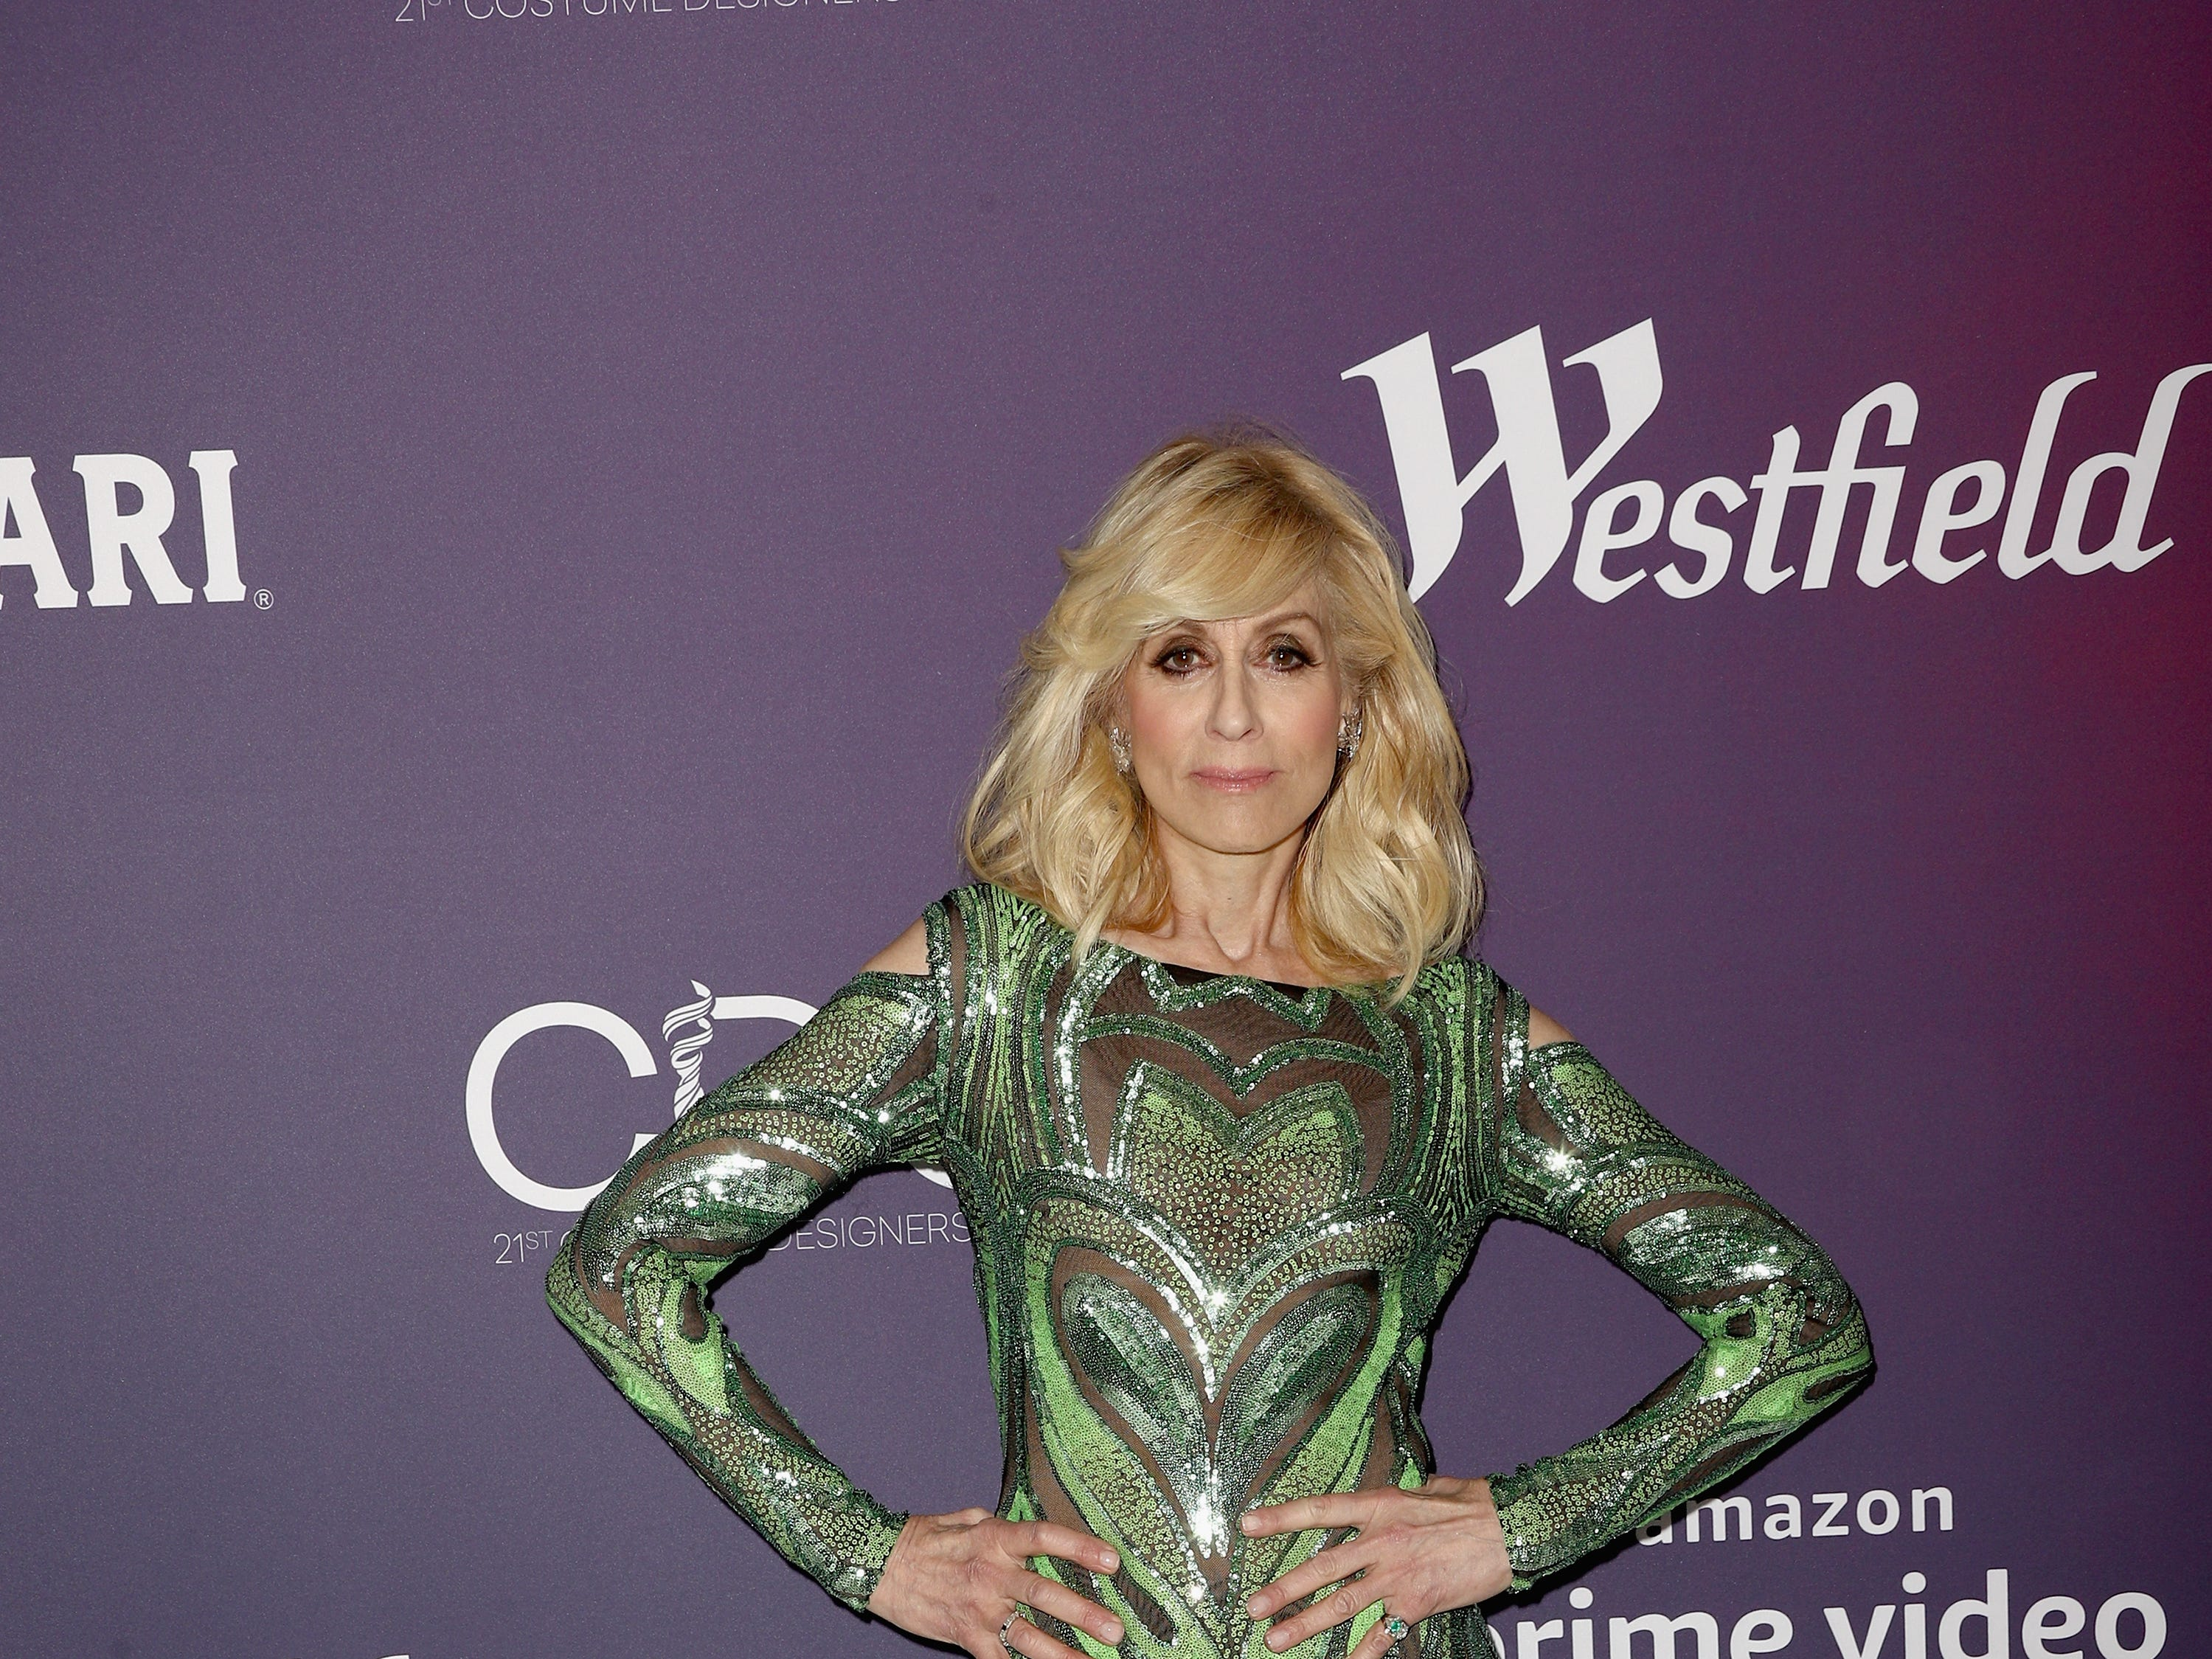 BEVERLY HILLS, CA - FEBRUARY 19:  Judith Light attends The 21st CDGA (Costume Designers Guild Awards) at The Beverly Hilton Hotel on February 19, 2019 in Beverly Hills, California.  (Photo by Frederick M. Brown/Getty Images for CDGA) ORG XMIT: 775298722 ORIG FILE ID: 1125945987